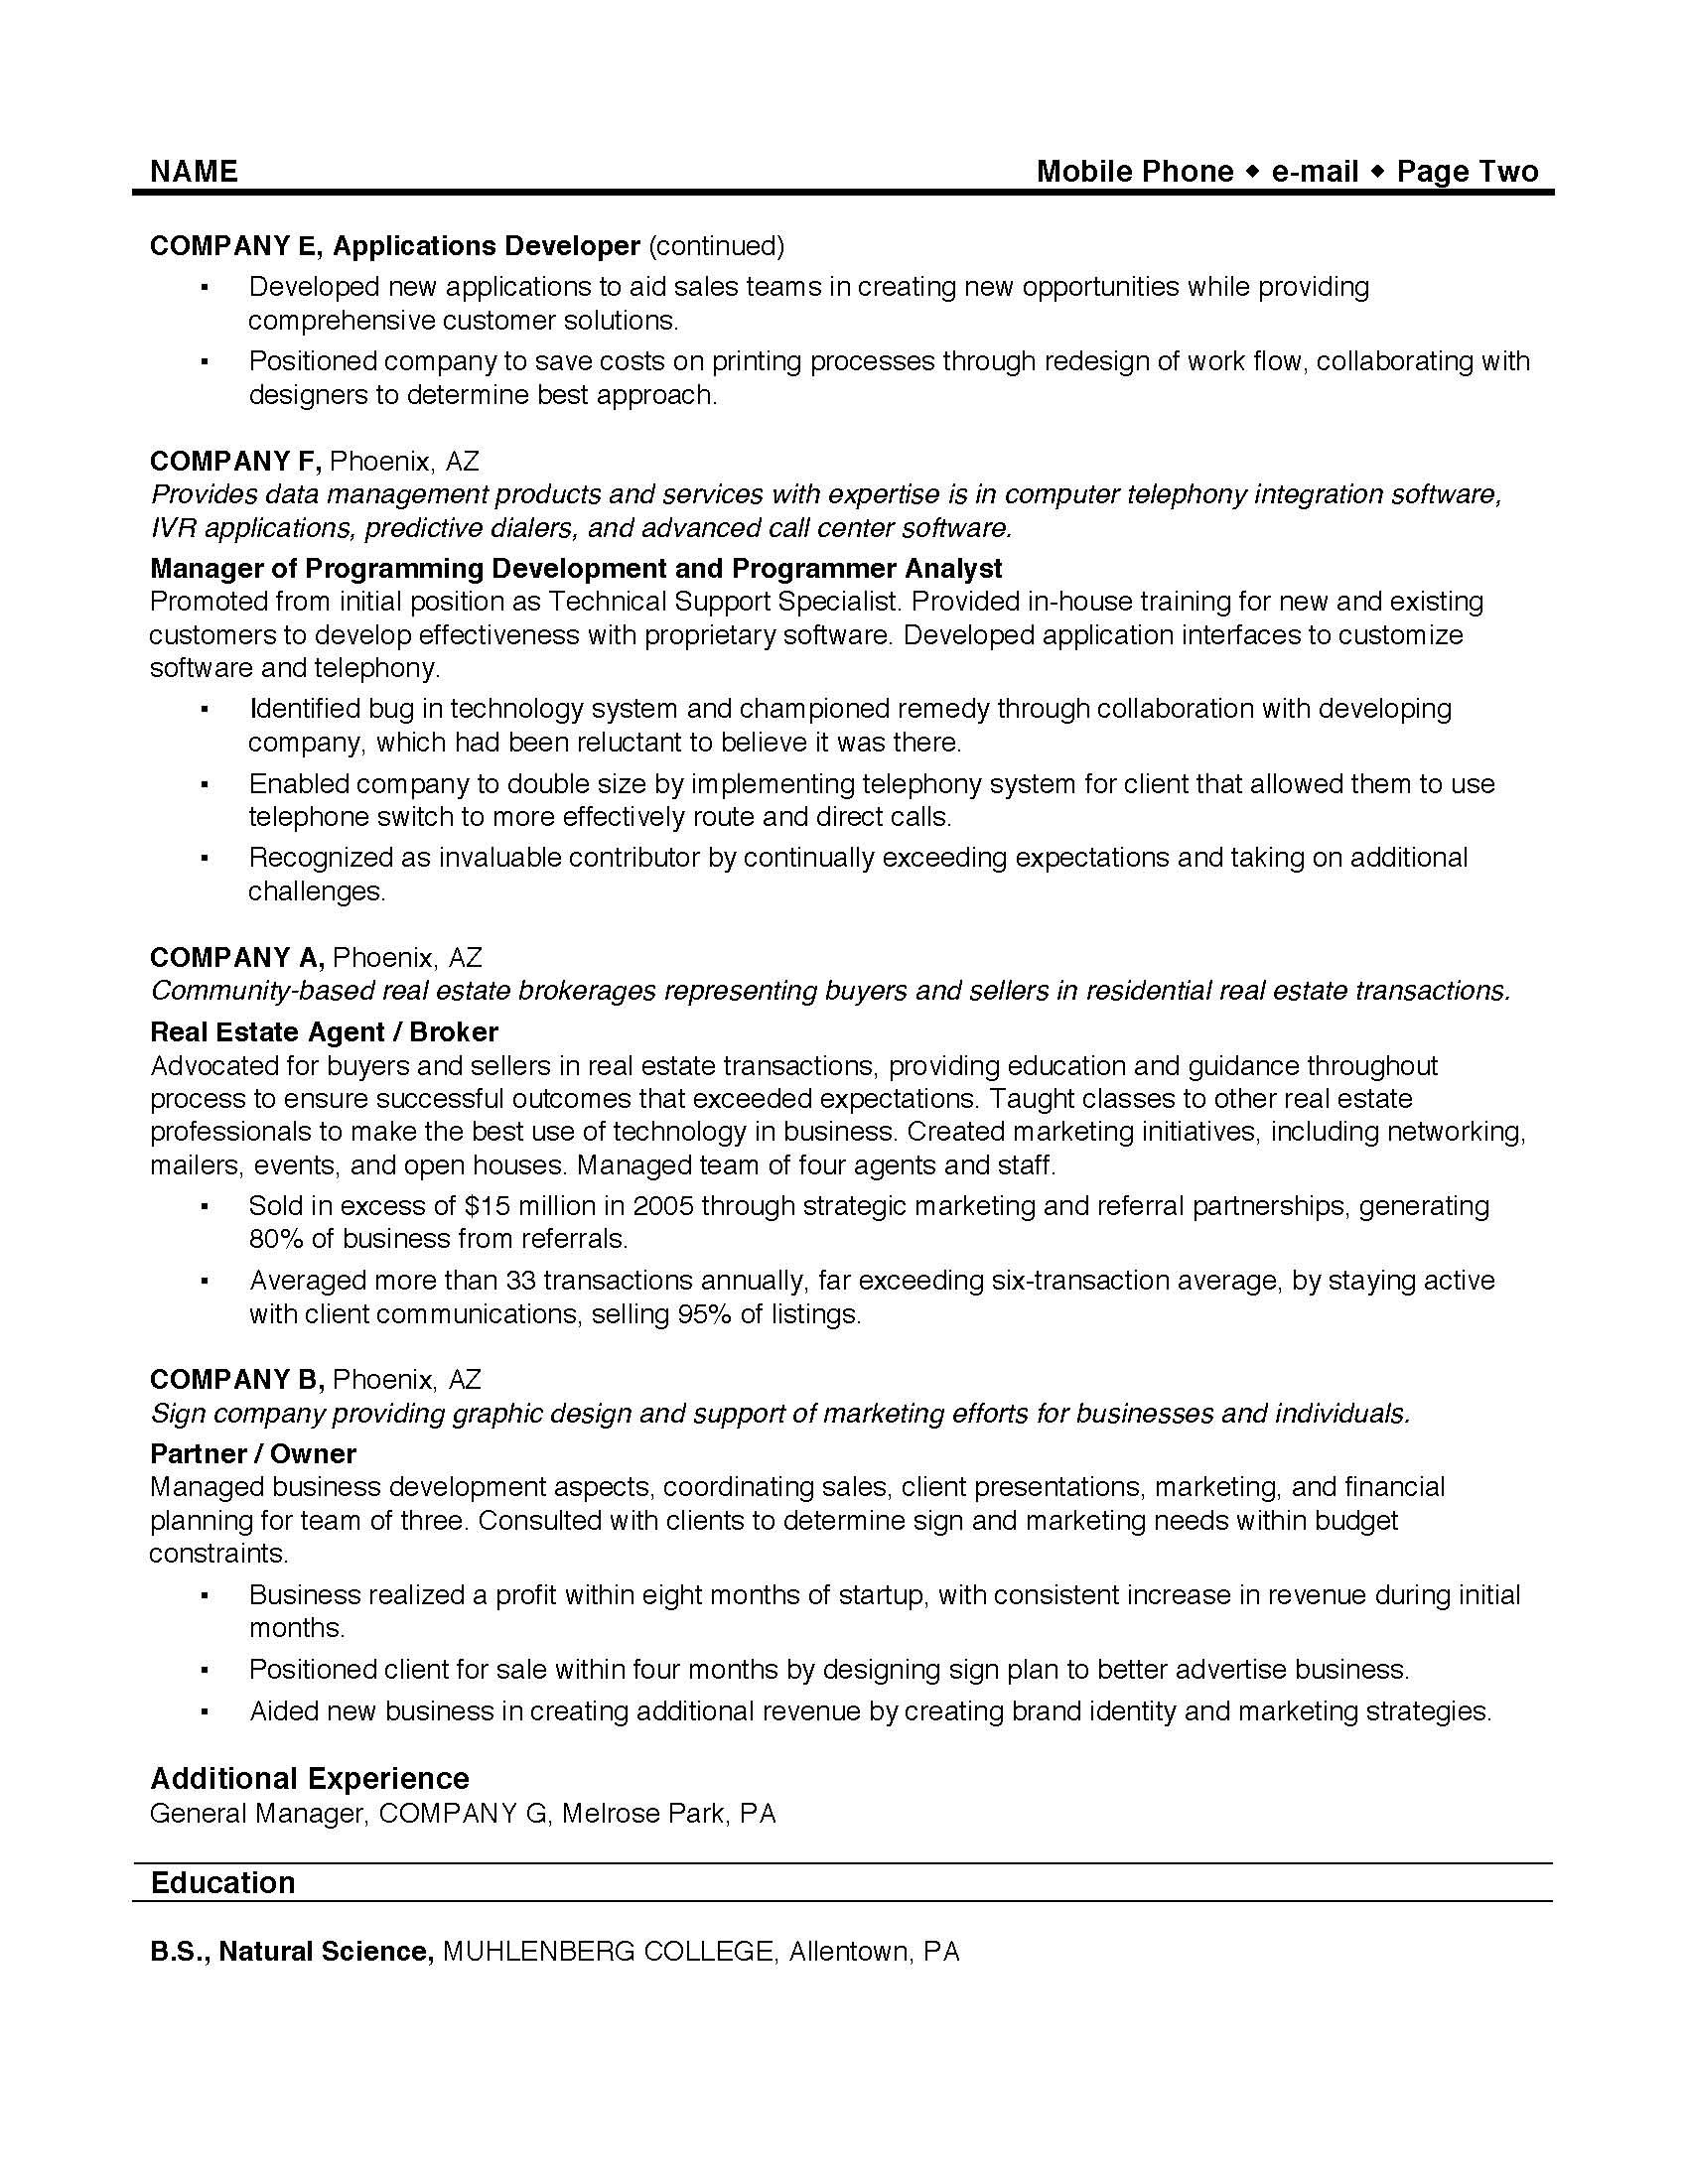 Sample Resume College Student Pics Photos Sample College Student Resume Examples Samples Resumes